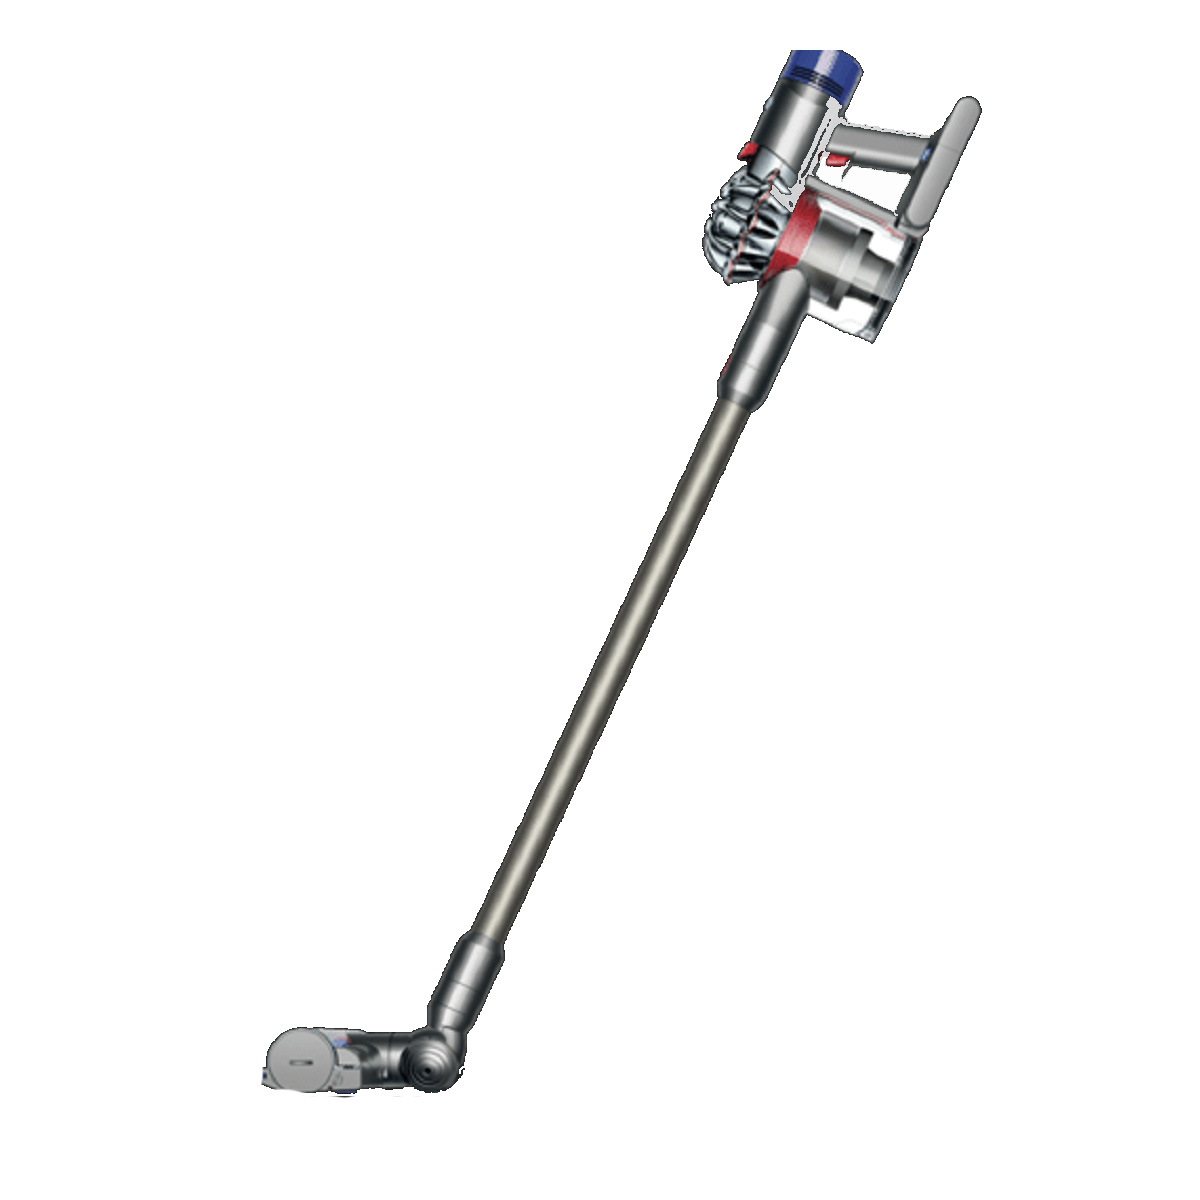 Dyson 164526-01 V8 Animal Handstick Vacuum Cleaner